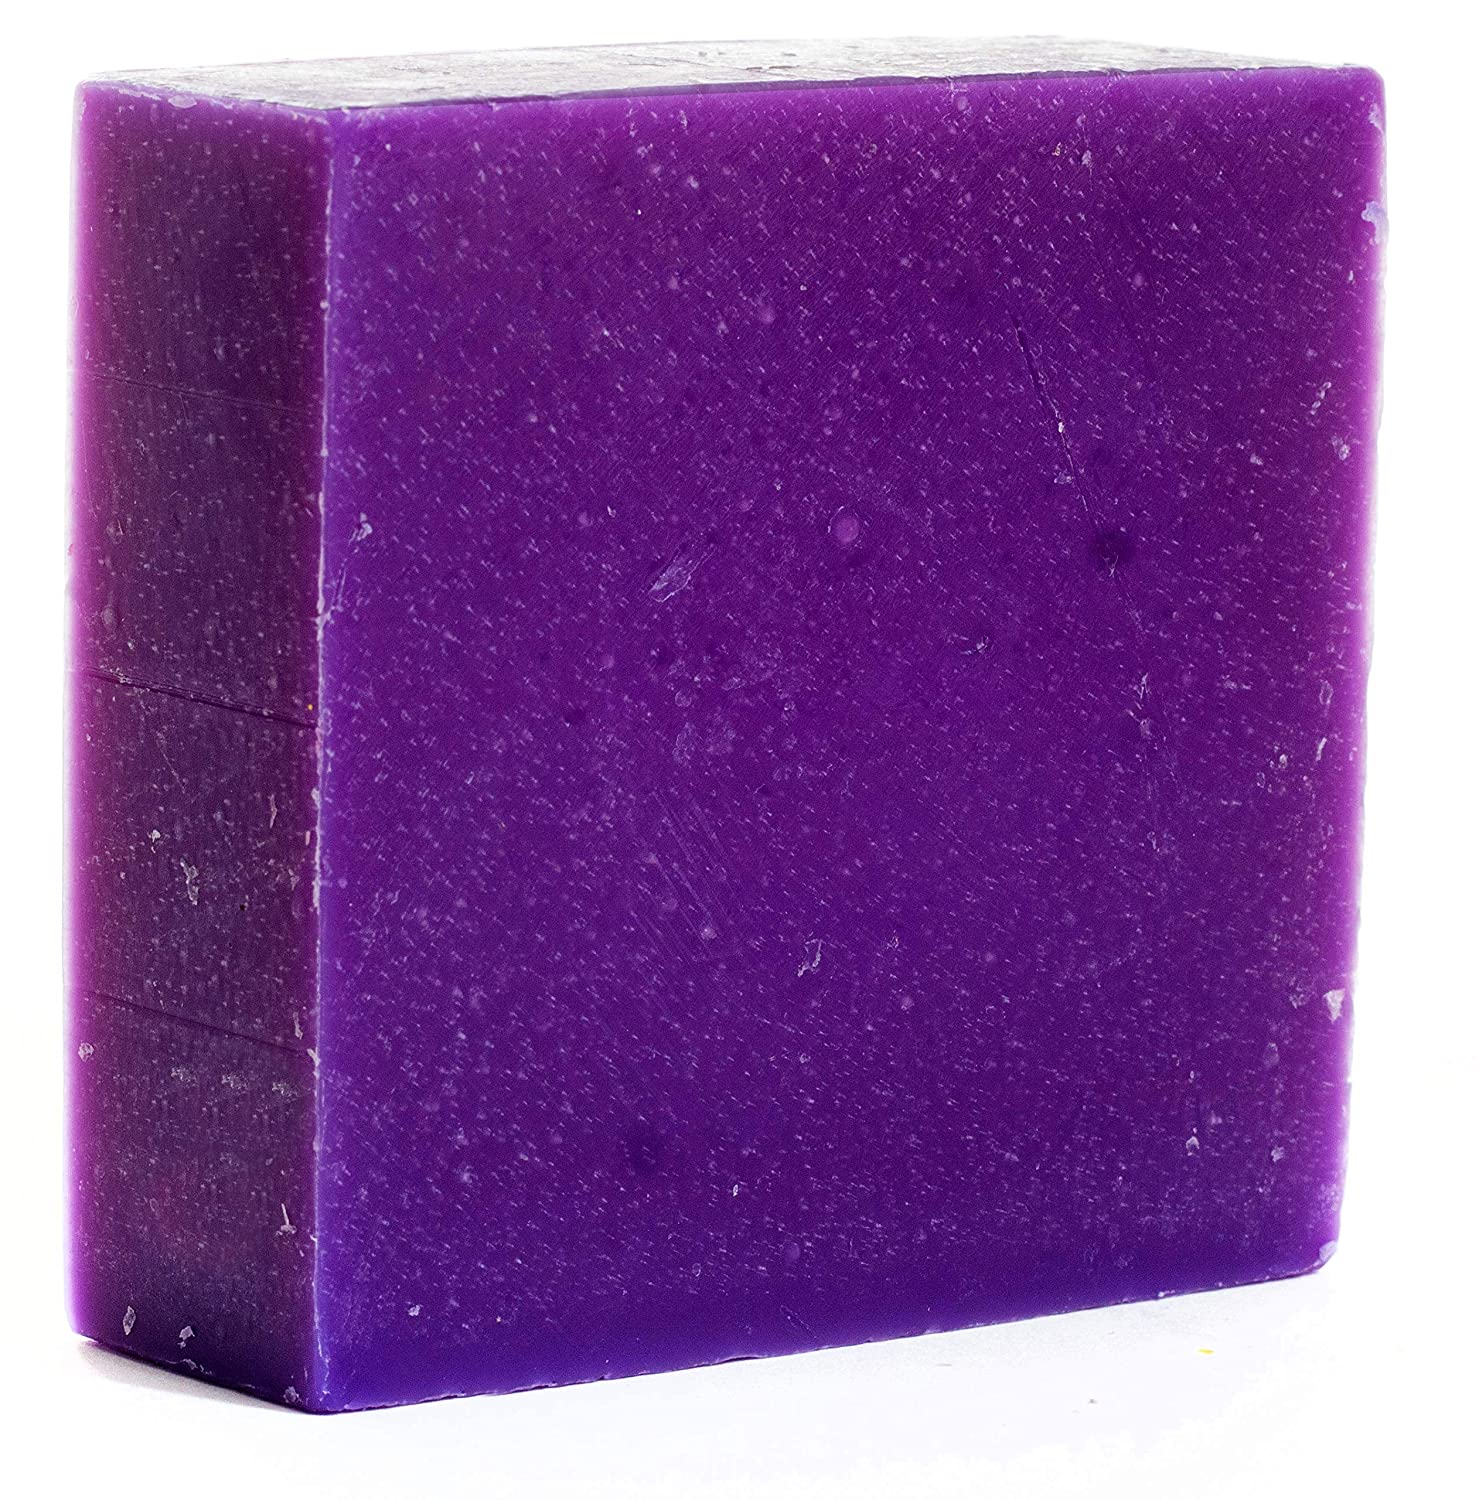 360Feel Soap Castile Handmade Soap bar, Floral favorite fragrance- Pure Essential Oil Natural Soaps- Great as Anniversary Wedding Gifts - Made in USA-Gift ready Lilac 5 Ounce